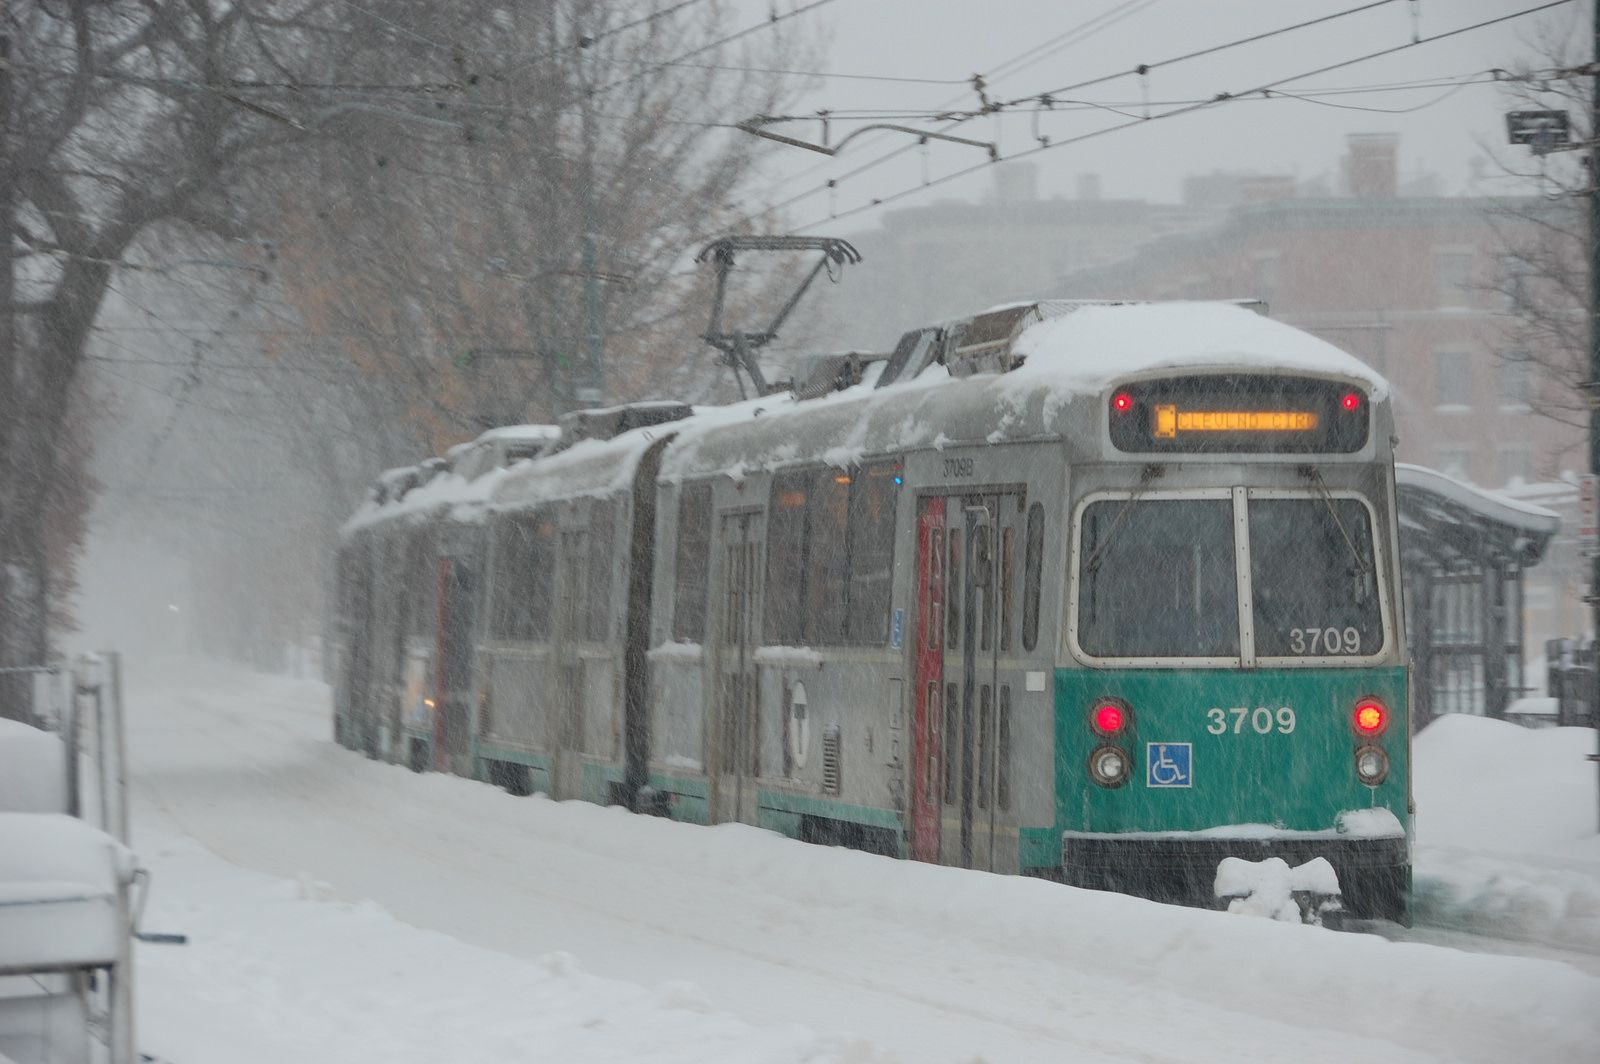 A Green Line trolley departs from St Marys Street stop | Flickr - Photo Sharing!